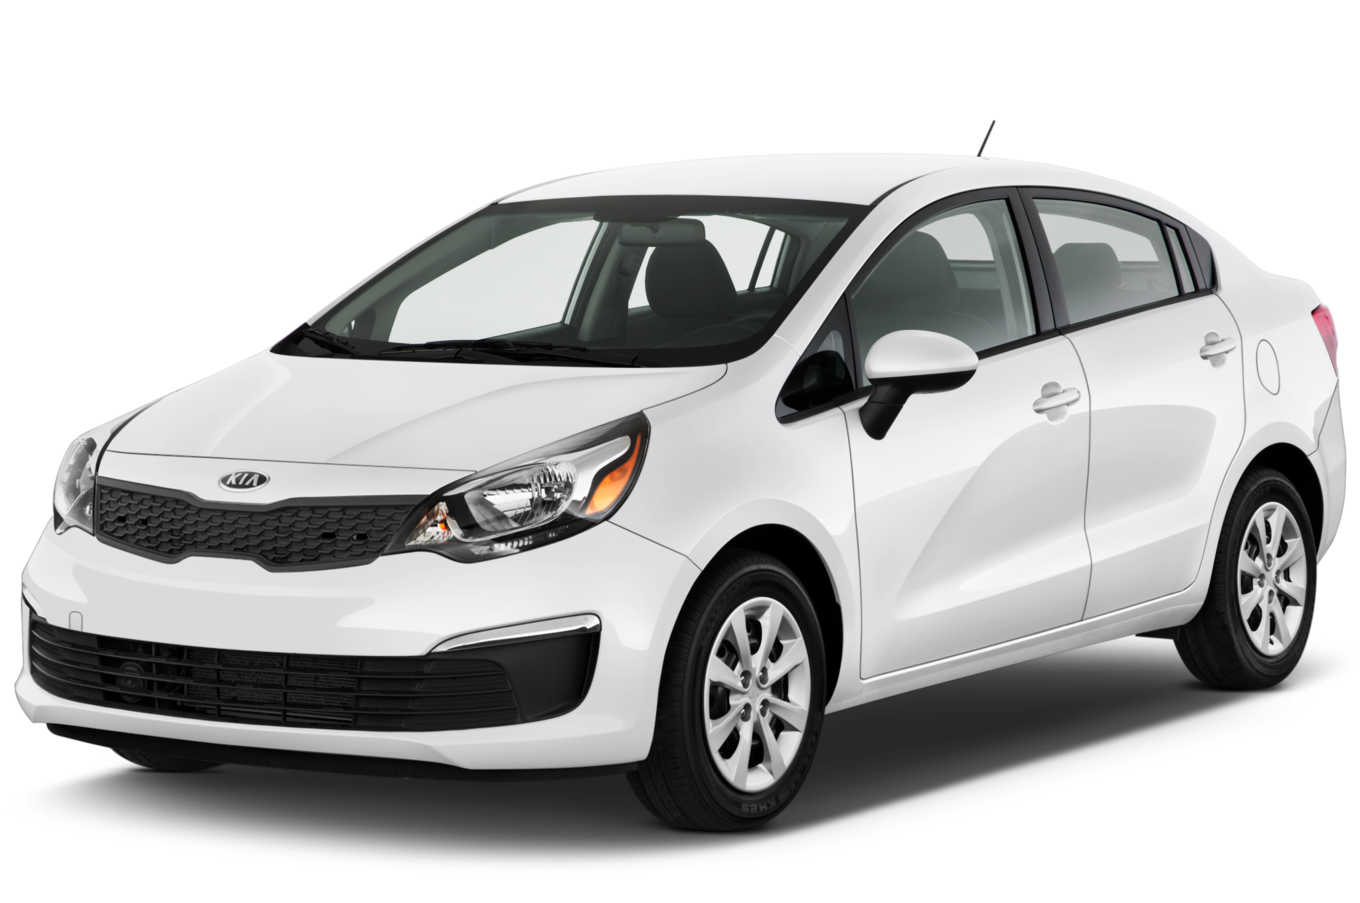 Kia rio photo - 4